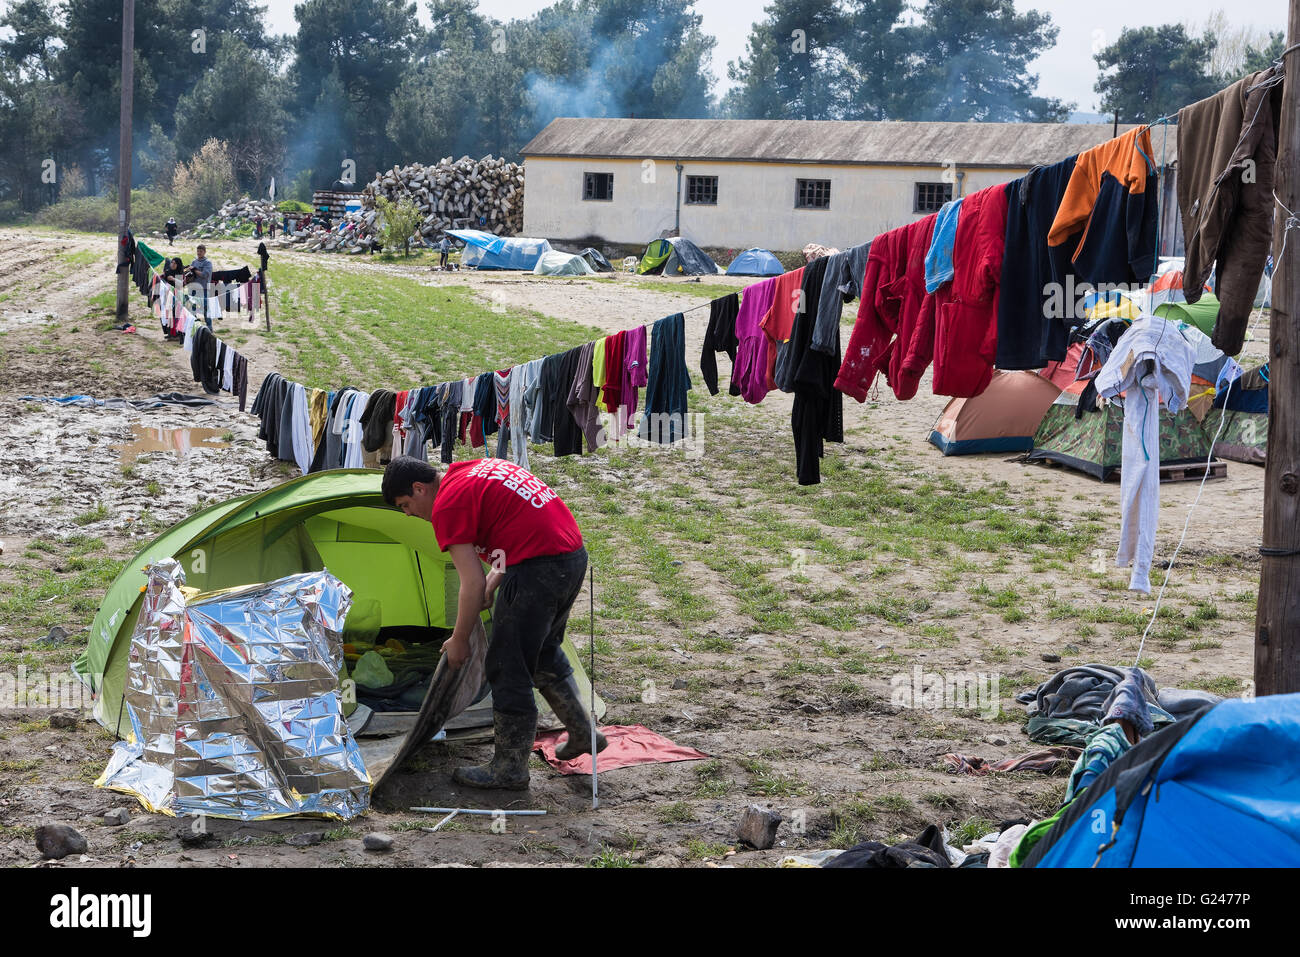 A refugee from Syria cleans his tent after heavy rain on March 17, 2015 in the refugee camp of Idomeni, Greece. - Stock Image